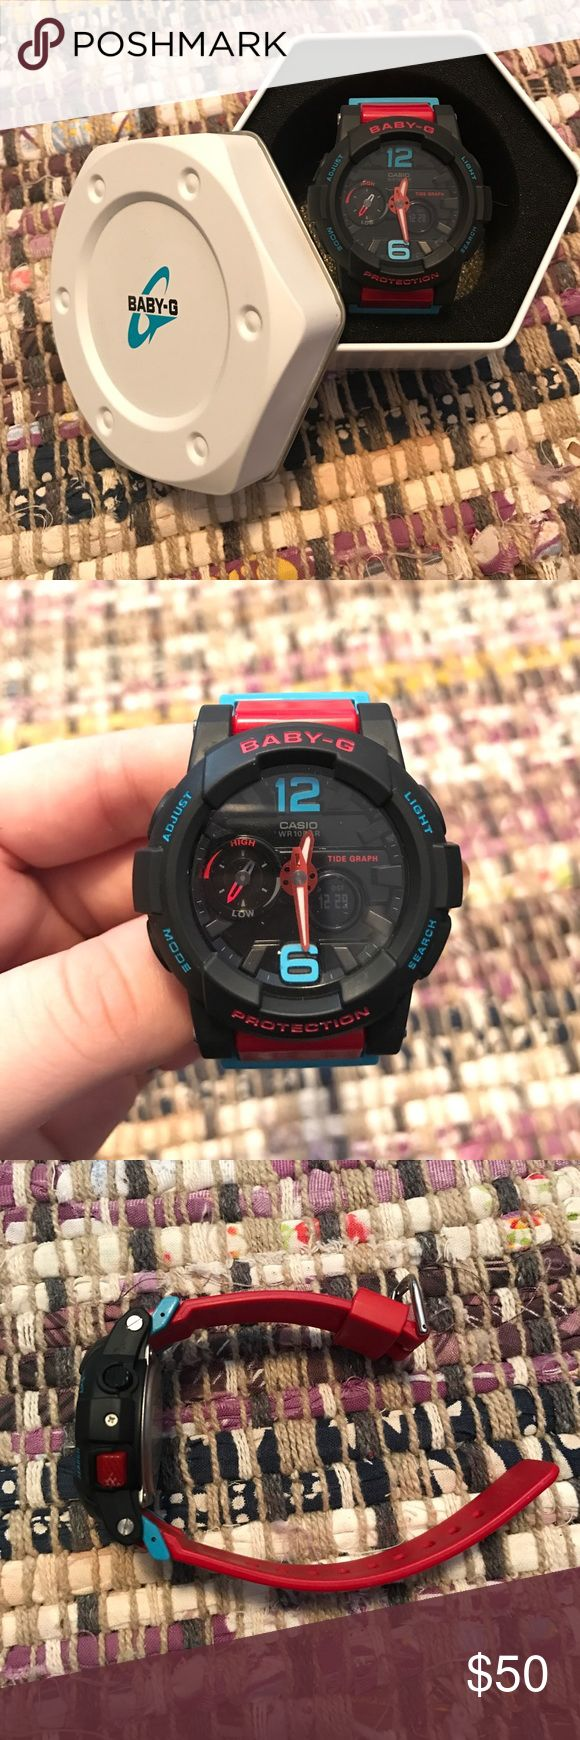 Like new Baby-G Shock Watch! Basically new baby G shock watch. Band is red plastic with light blue accents and a matte black face. Tells time, temperature, tides, distance. Has a timer, light, and alarm setting! It was only worn a couple times and looks brand new. G-Shock Accessories Watches